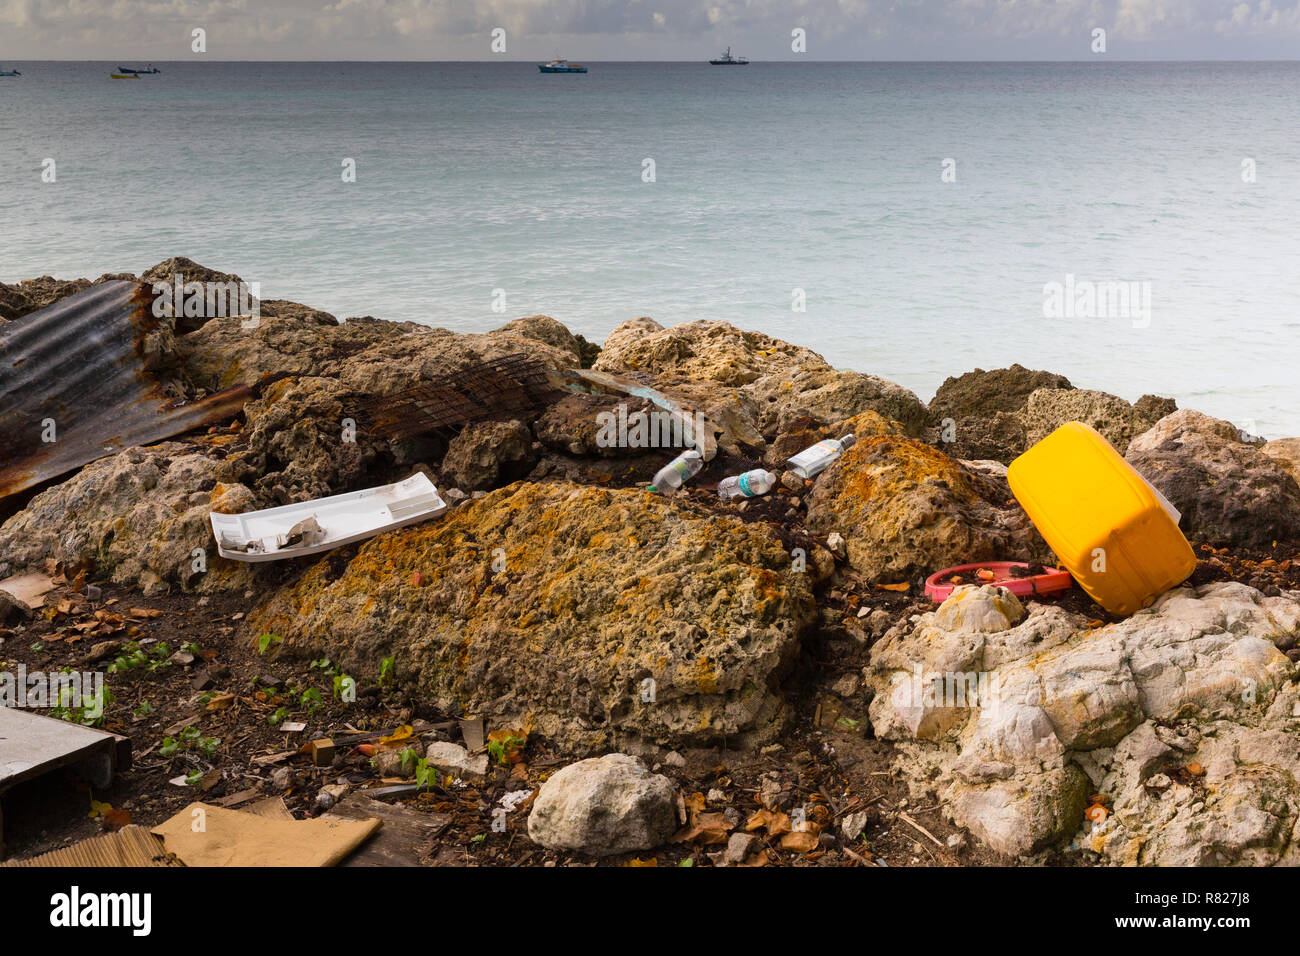 Discarded plastic and other waste litters a shoreline on the Caribbean island of Barbados - Stock Image